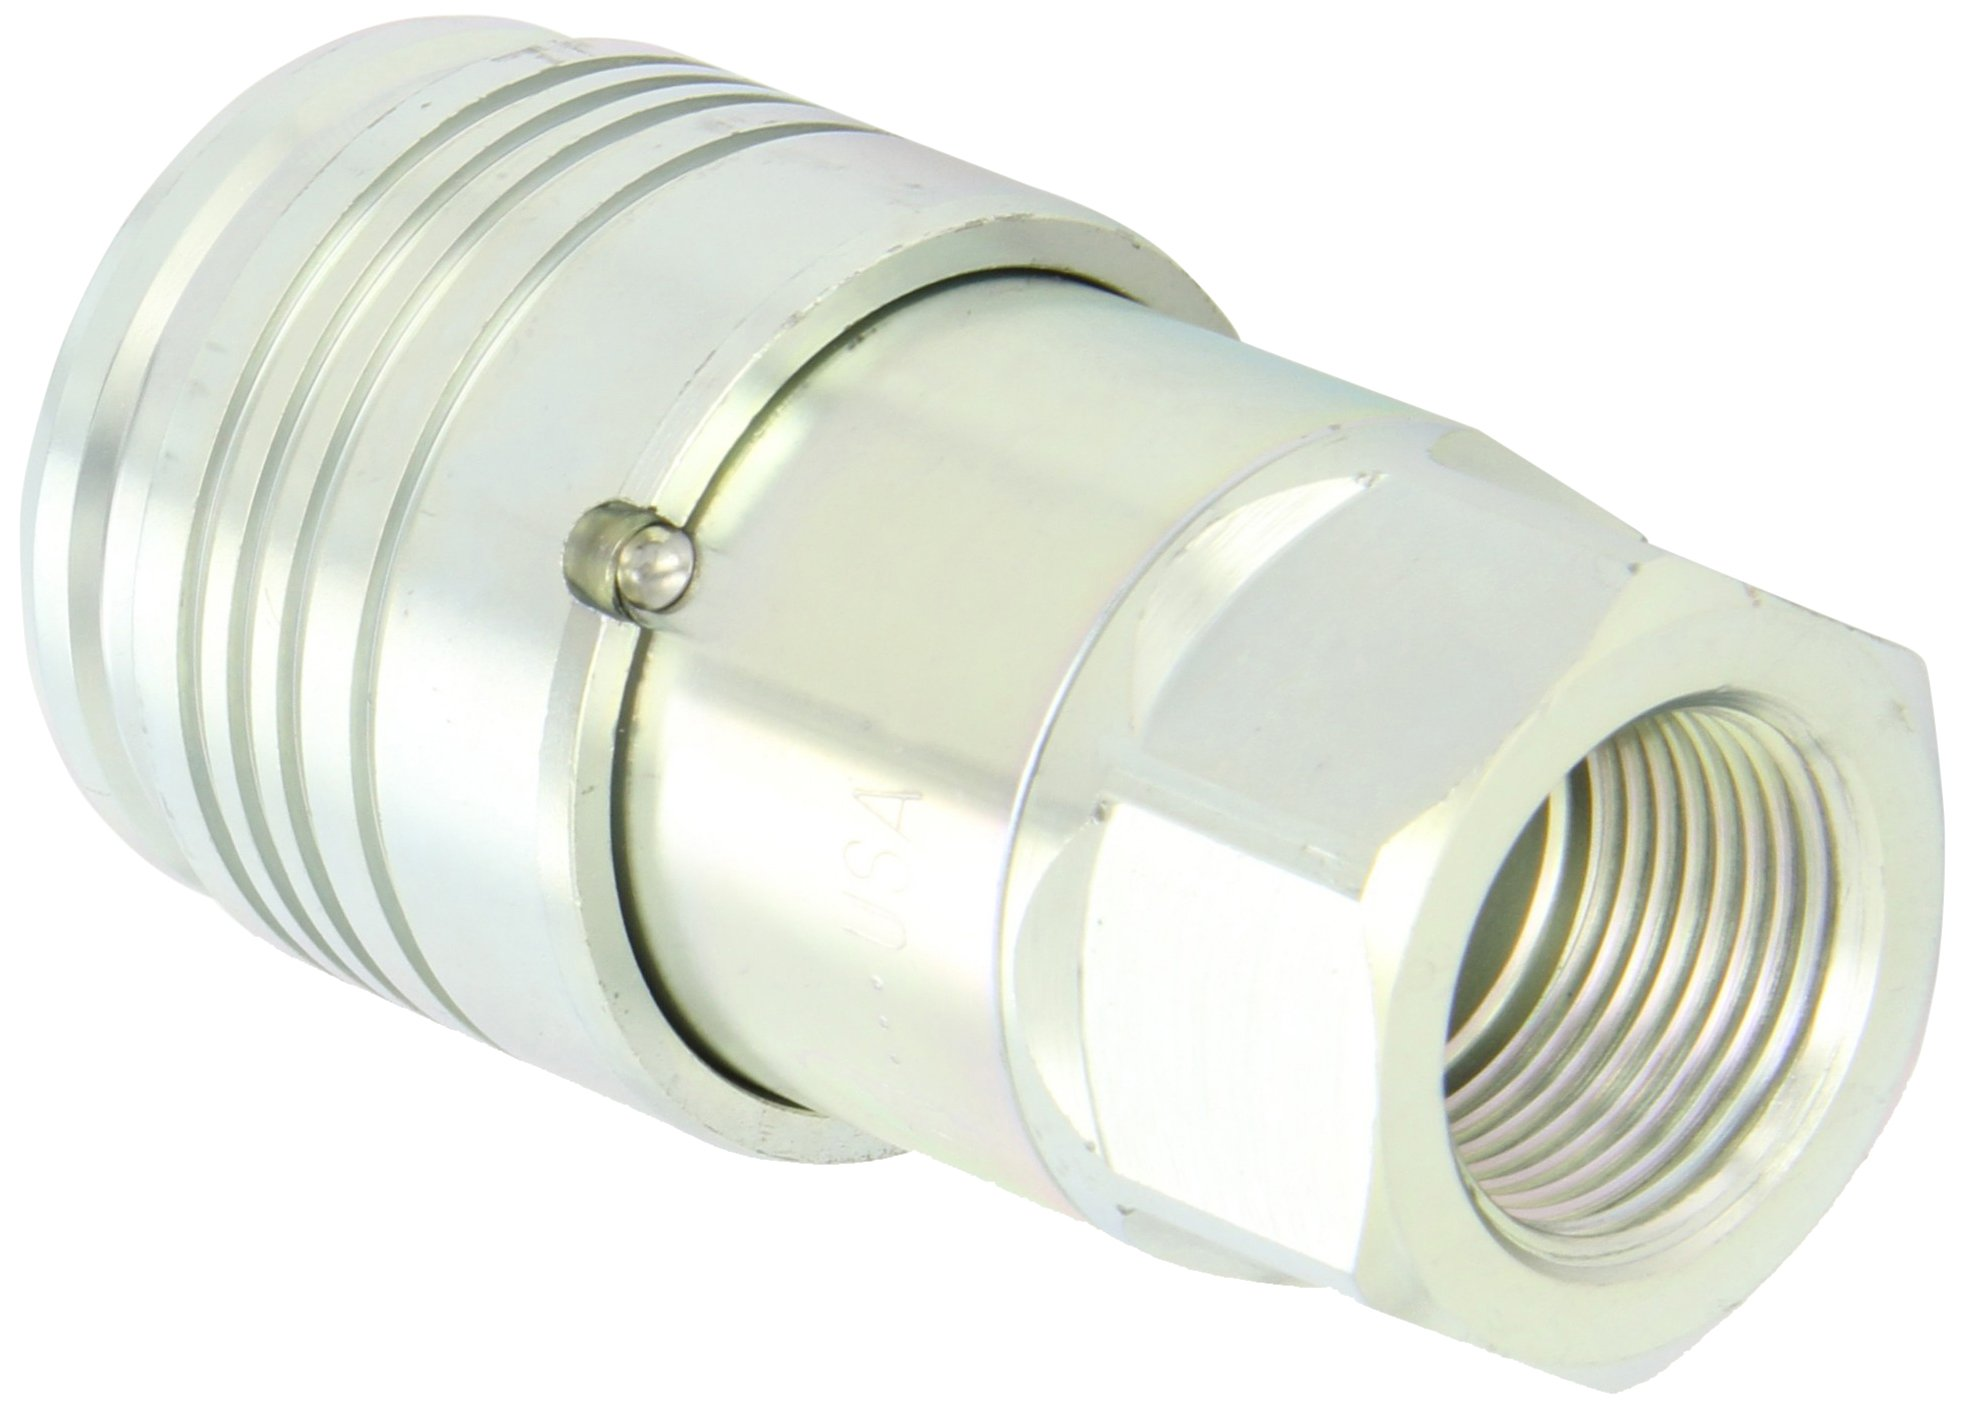 Dixon 8HTF8 Steel Flush Face Hydraulic Quick-Connect Fitting, Coupler, 1'' Coupling x 1''-11-1/2 NPTF by Dixon Valve & Coupling (Image #1)